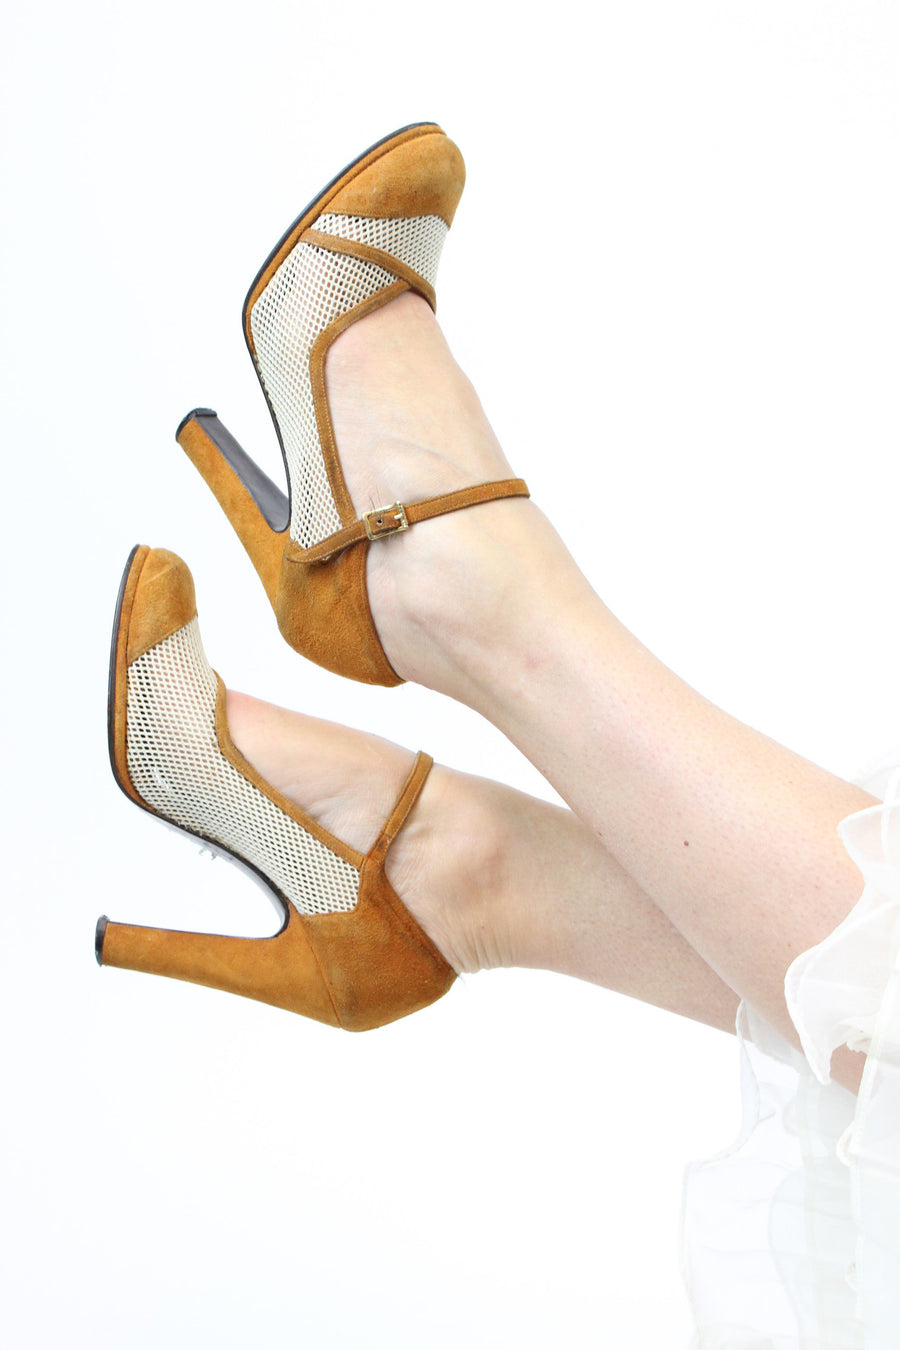 1960's spectator pumps | suede and mesh mary jane | size 6.5